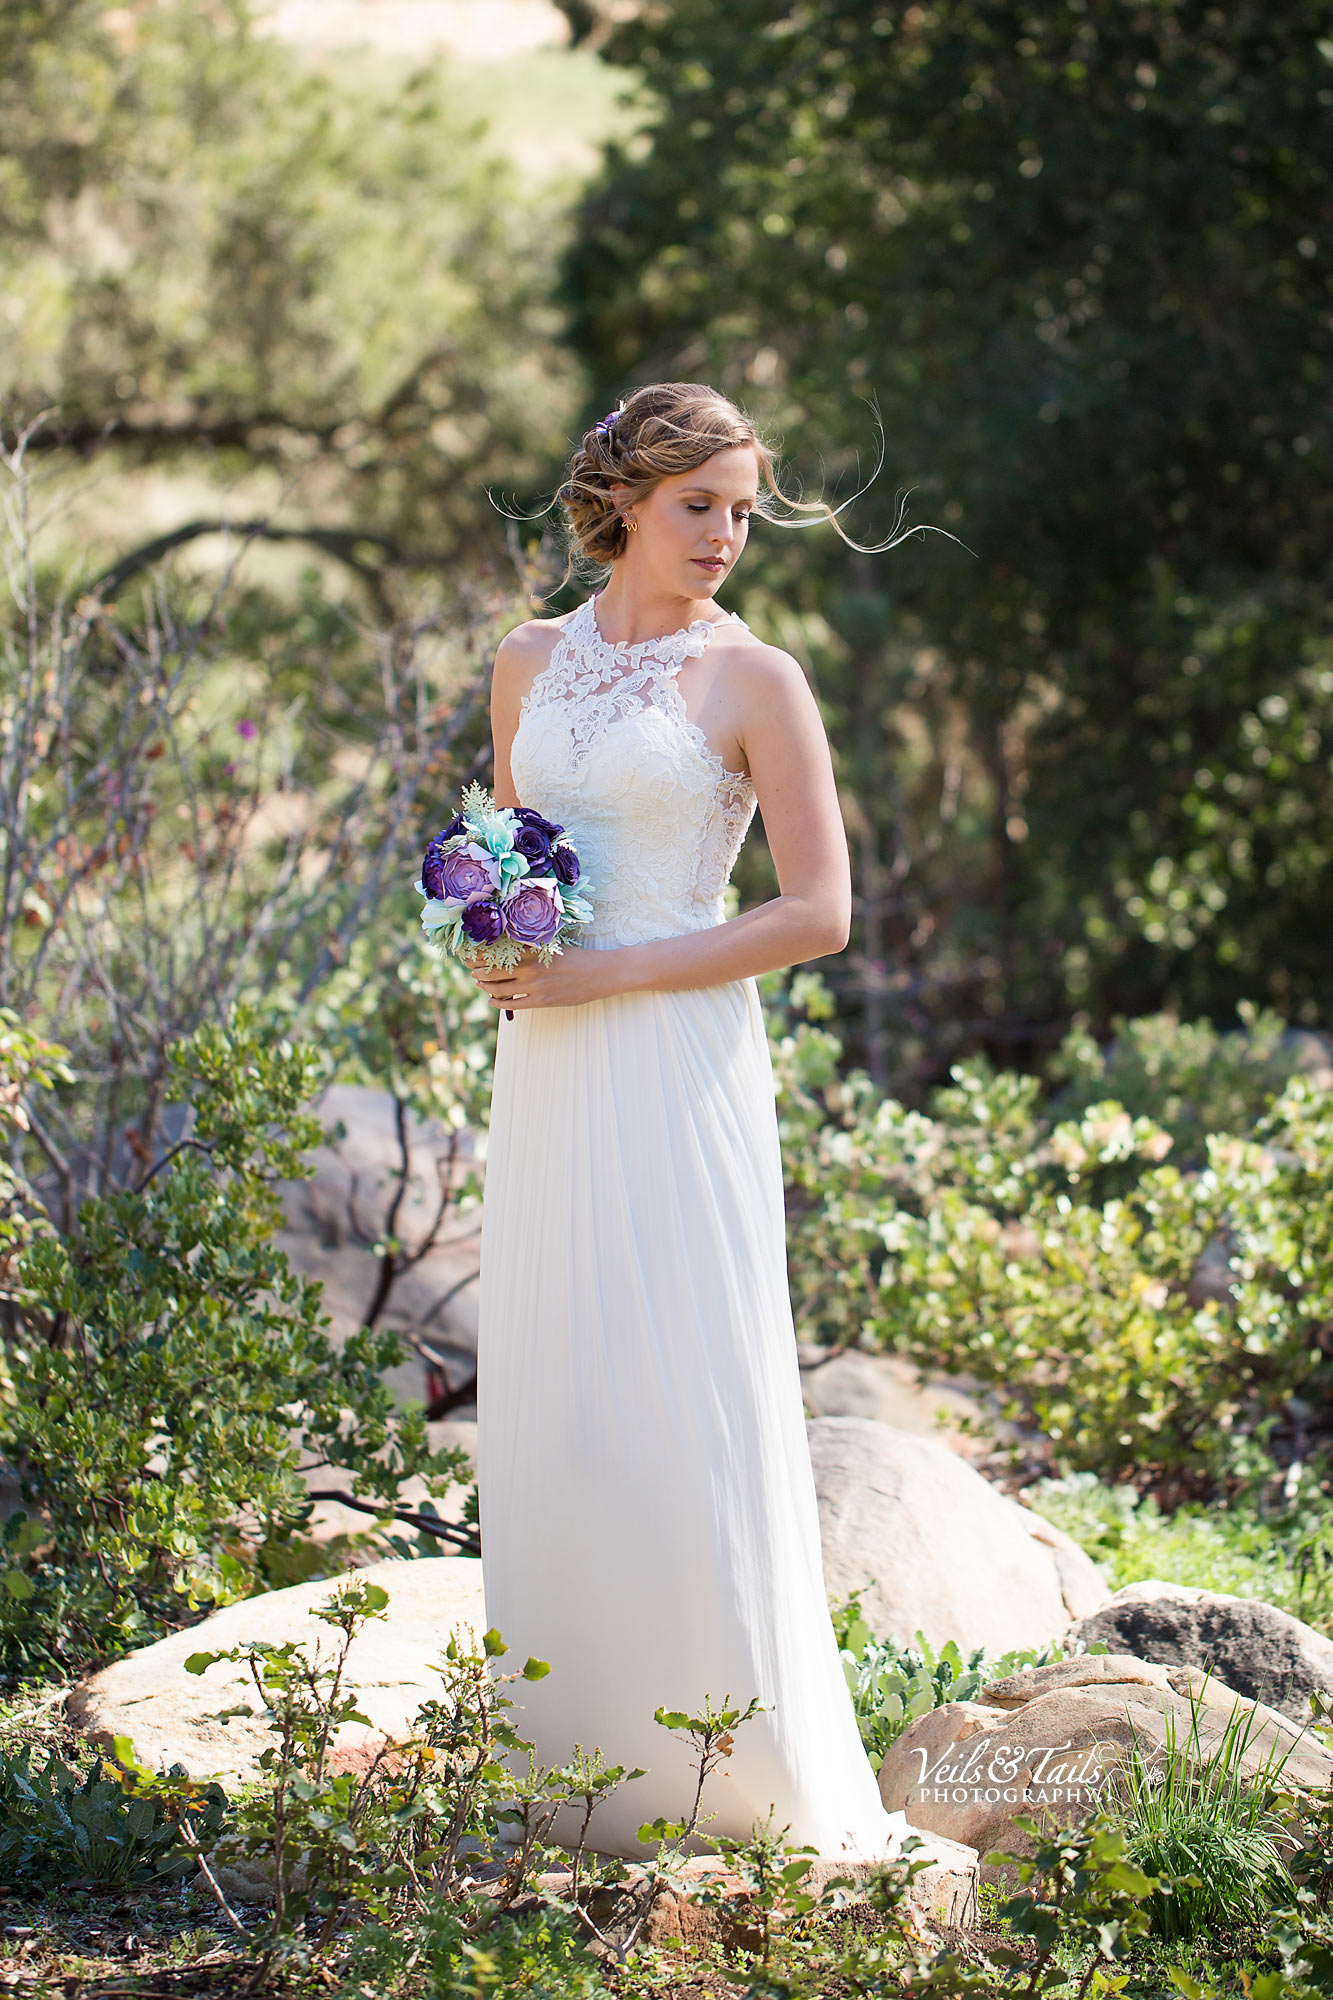 Santa Barbara Botanicals wedding photographer